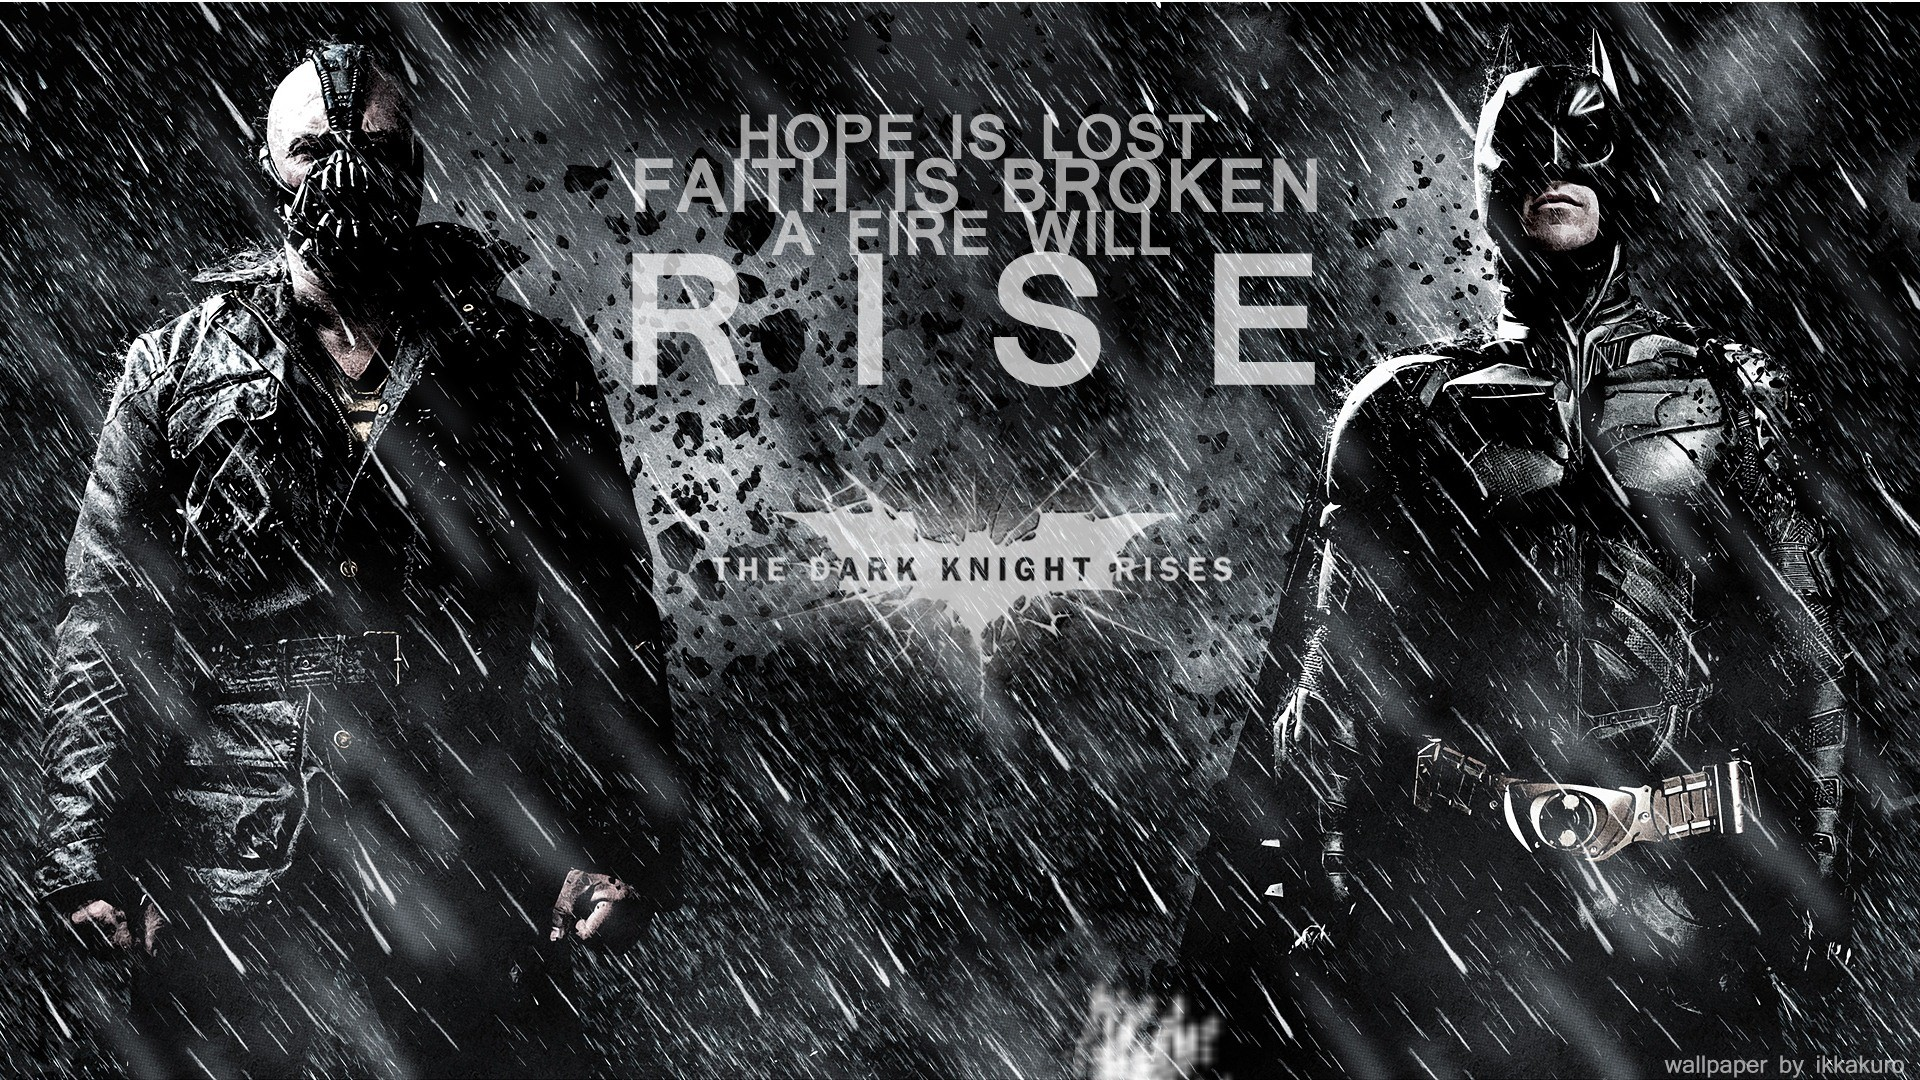 The Dark Knight Rises Wallpaper Hd 1920x1080 79 Images